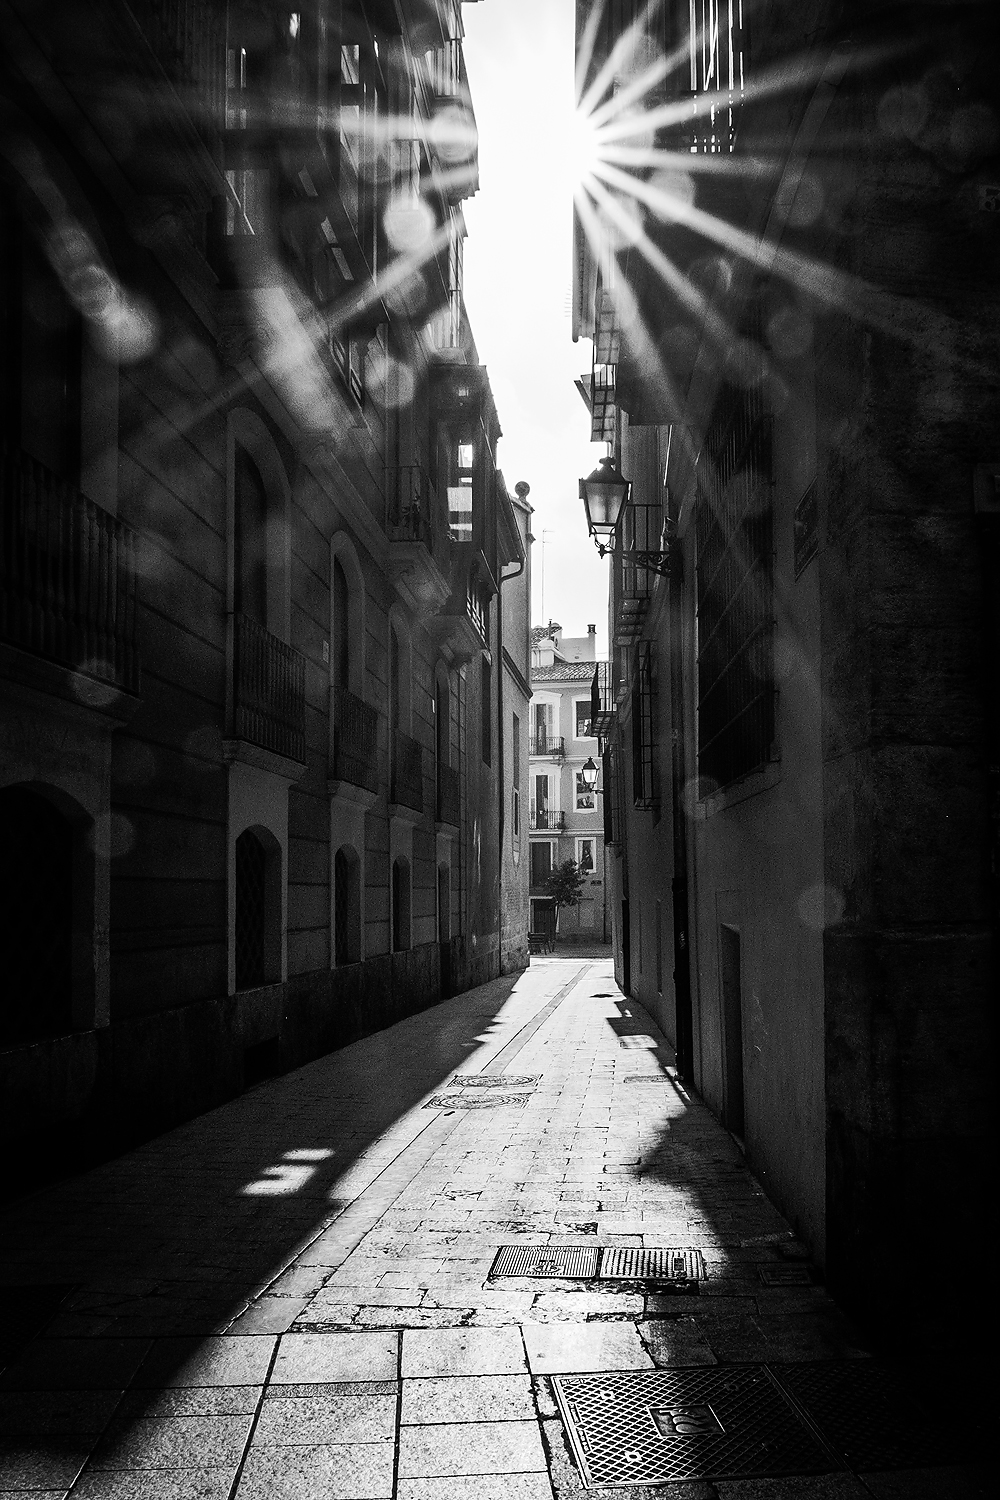 Street photography image of Valencia with the Fujifilm XT1 by Willie Kers